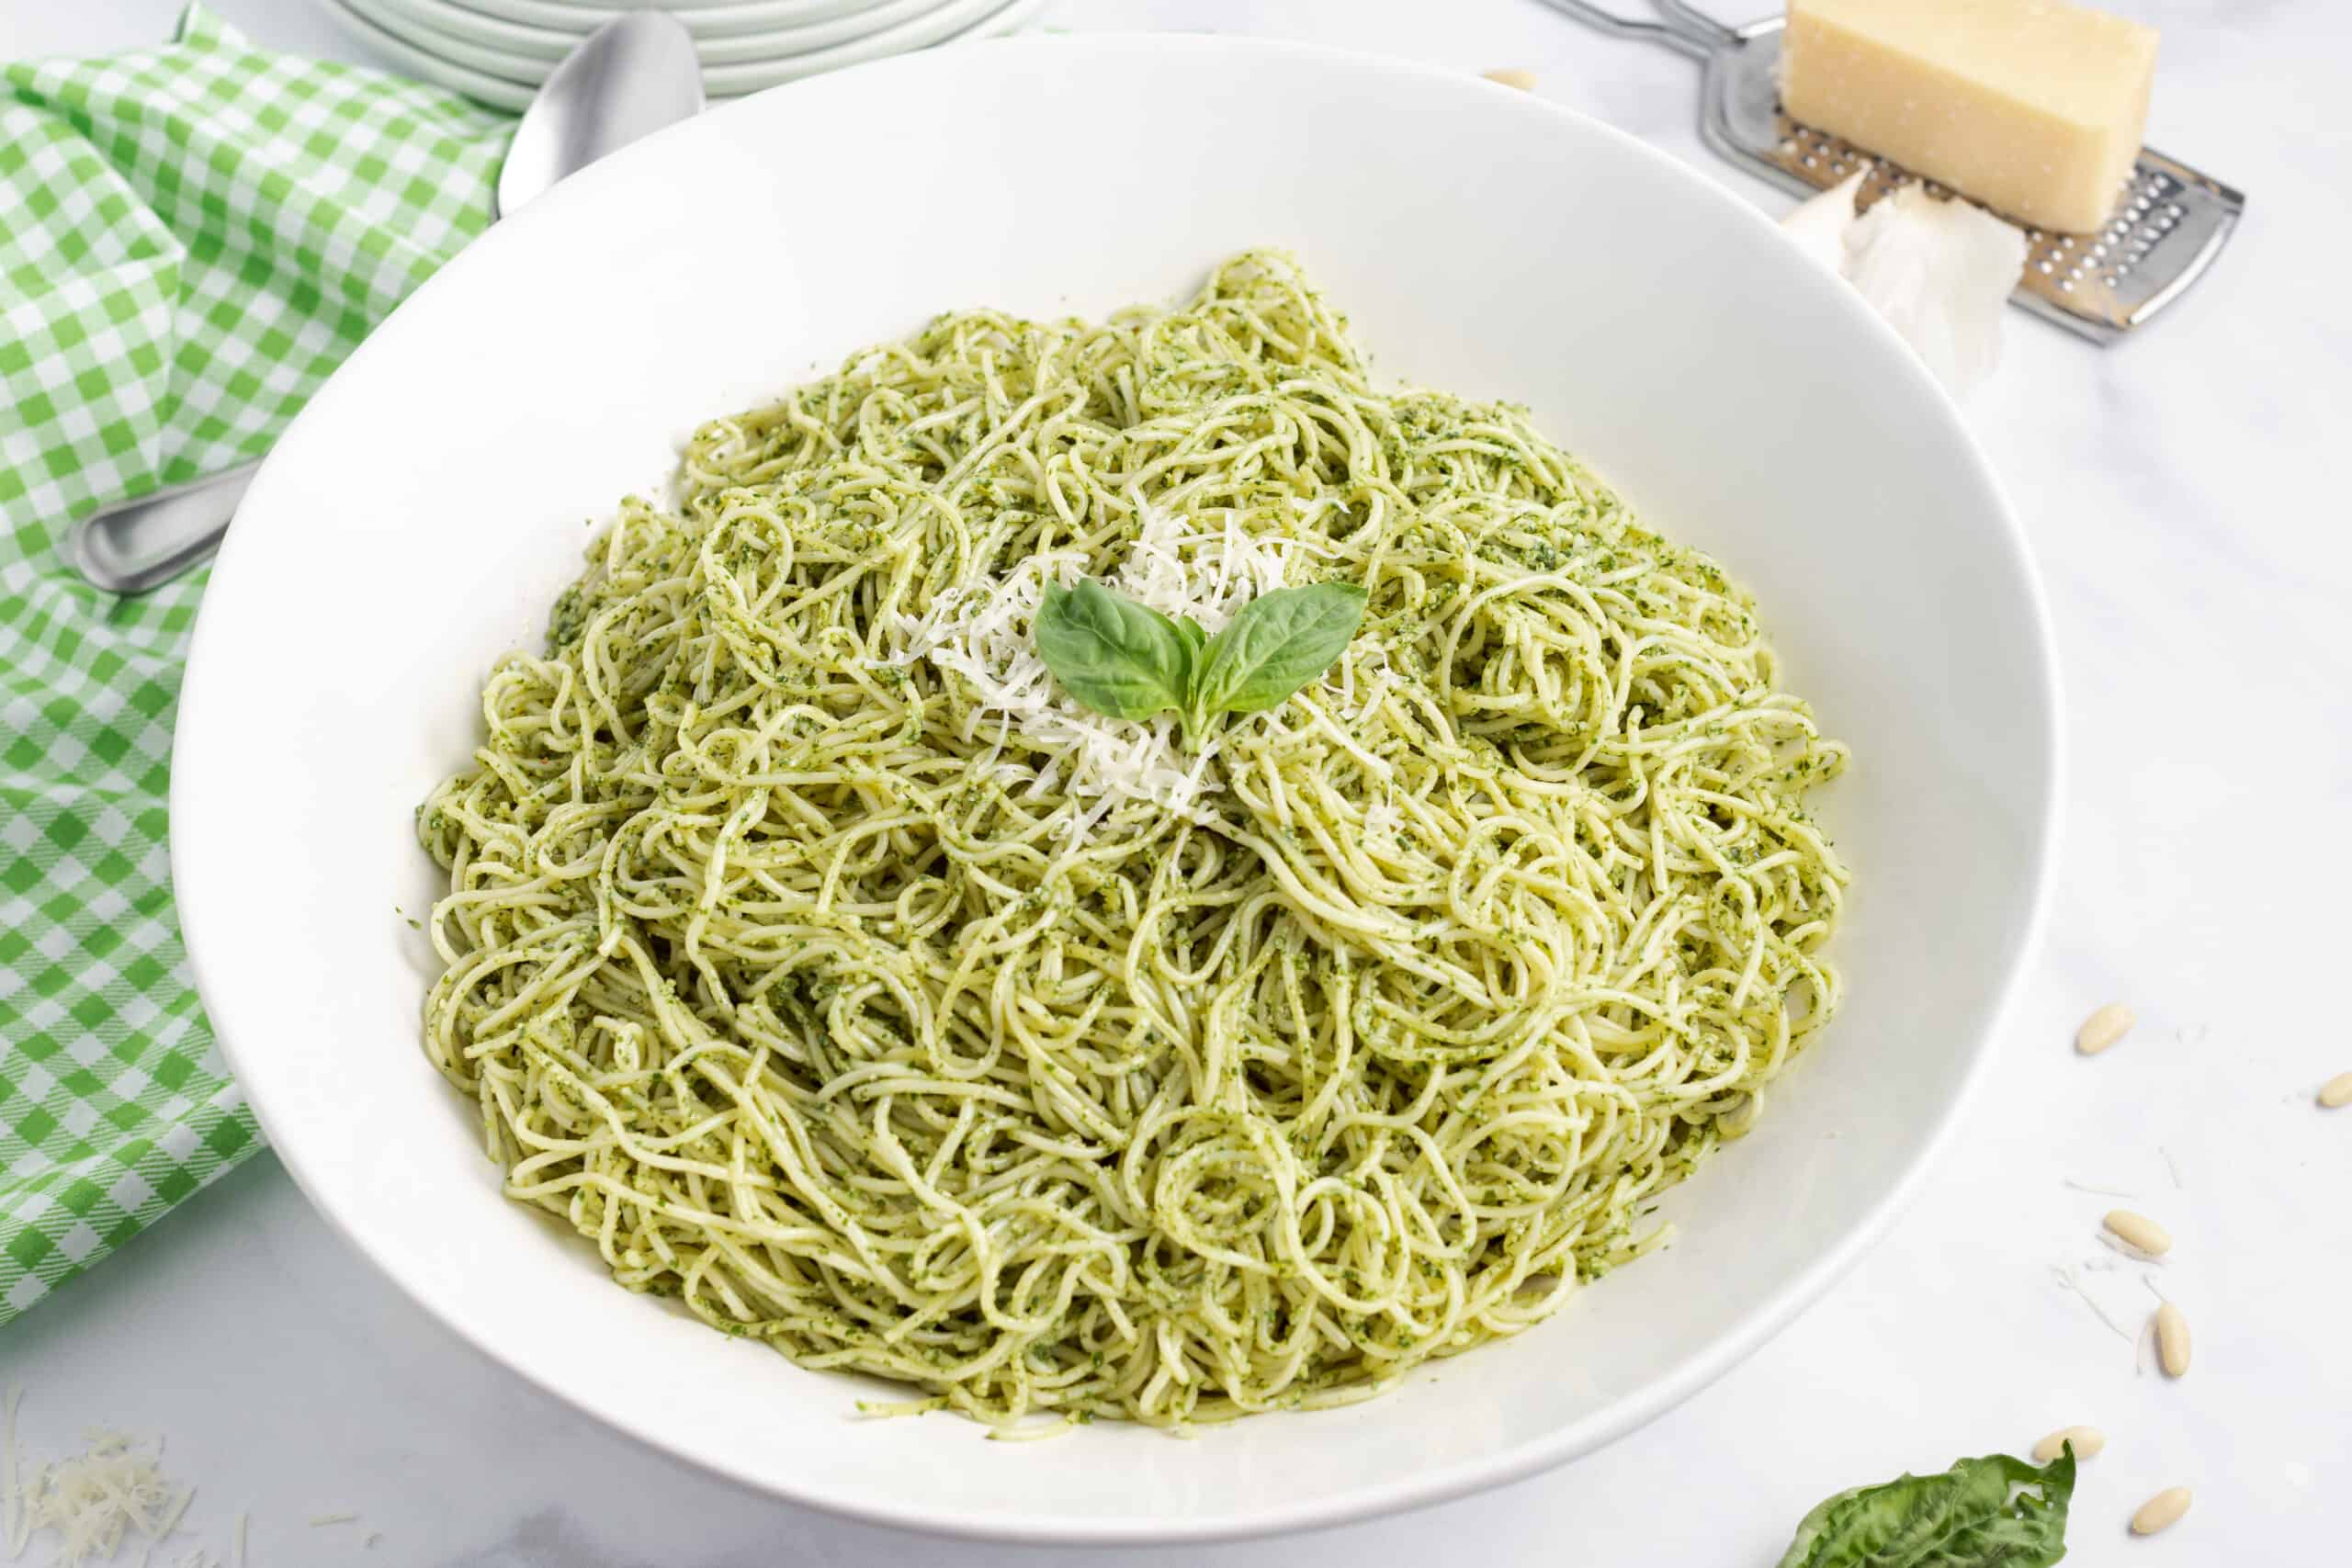 Pesto pasta with parmesan cheese in a white serving bowl and cheese grater on the side.